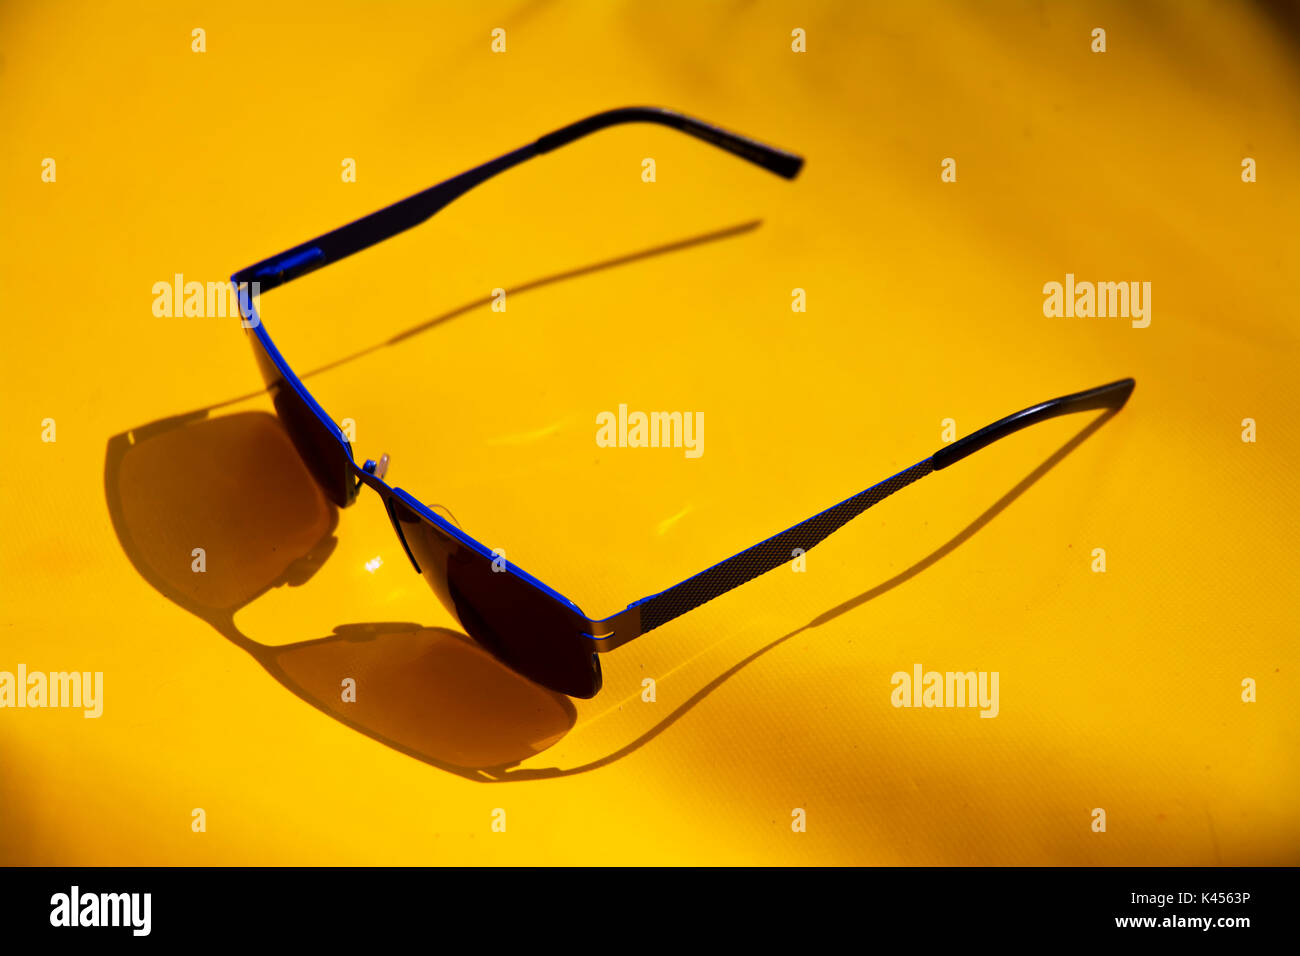 Blue Sunglasses on a yellow Sunbed - Stock Image